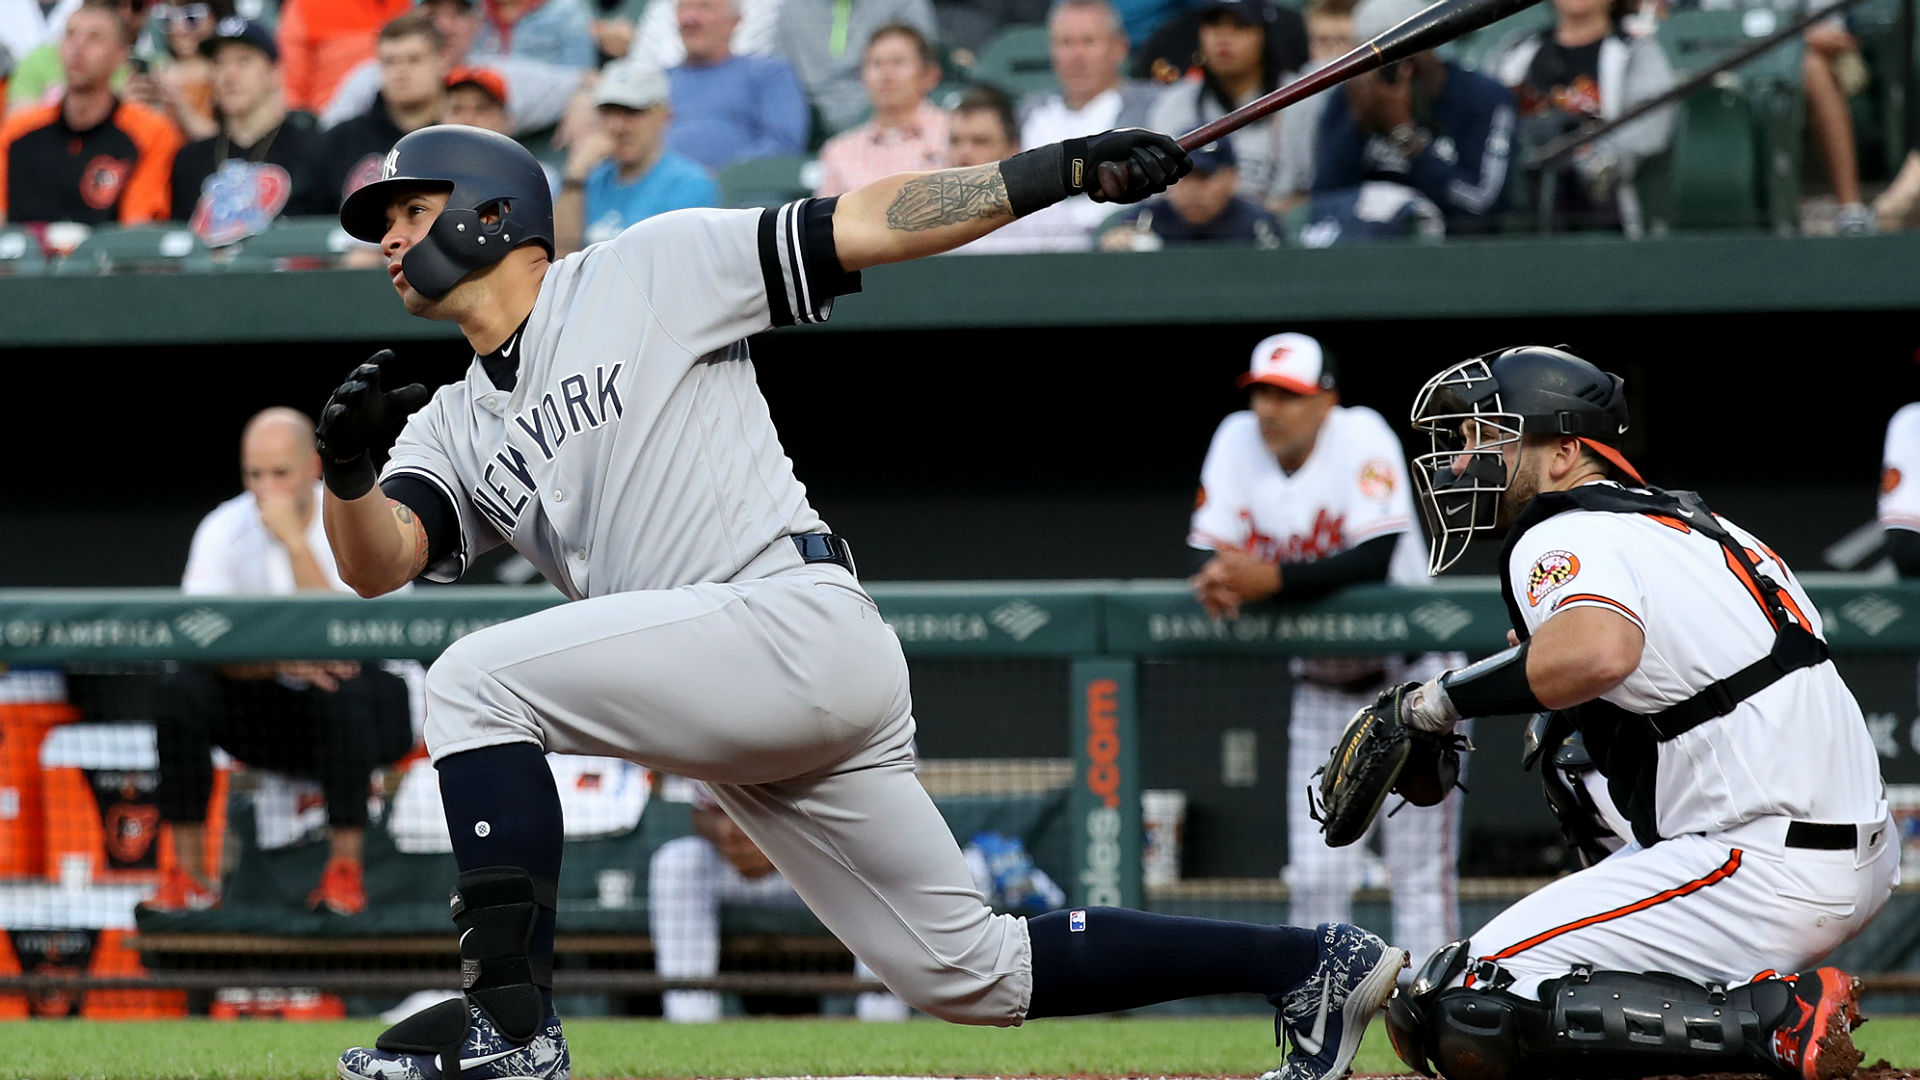 New York scored six runs in the first three innings and cruised to an easy 11-4 victory over the Orioles.